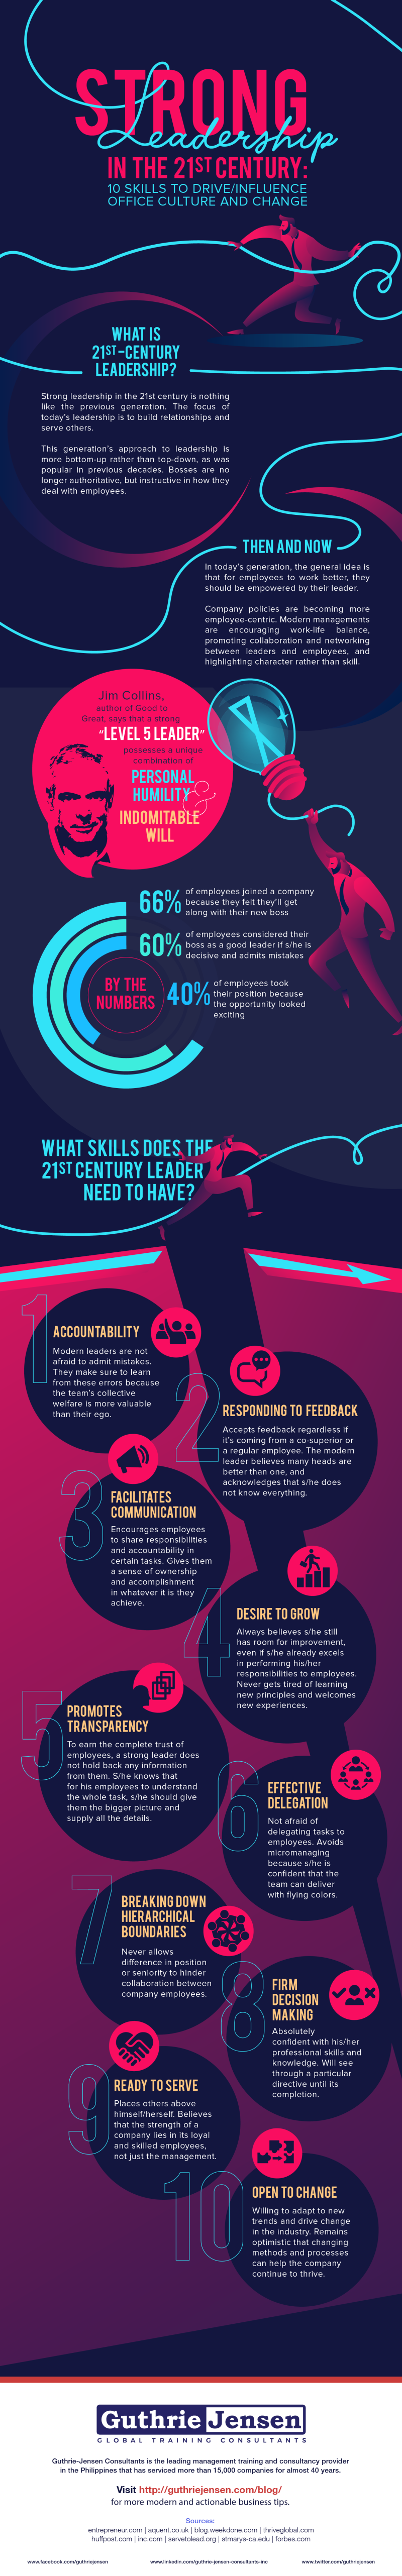 Strong Leadership in the 21st Century: 10 Skills to Influence Office Culture and Change [Infographic]